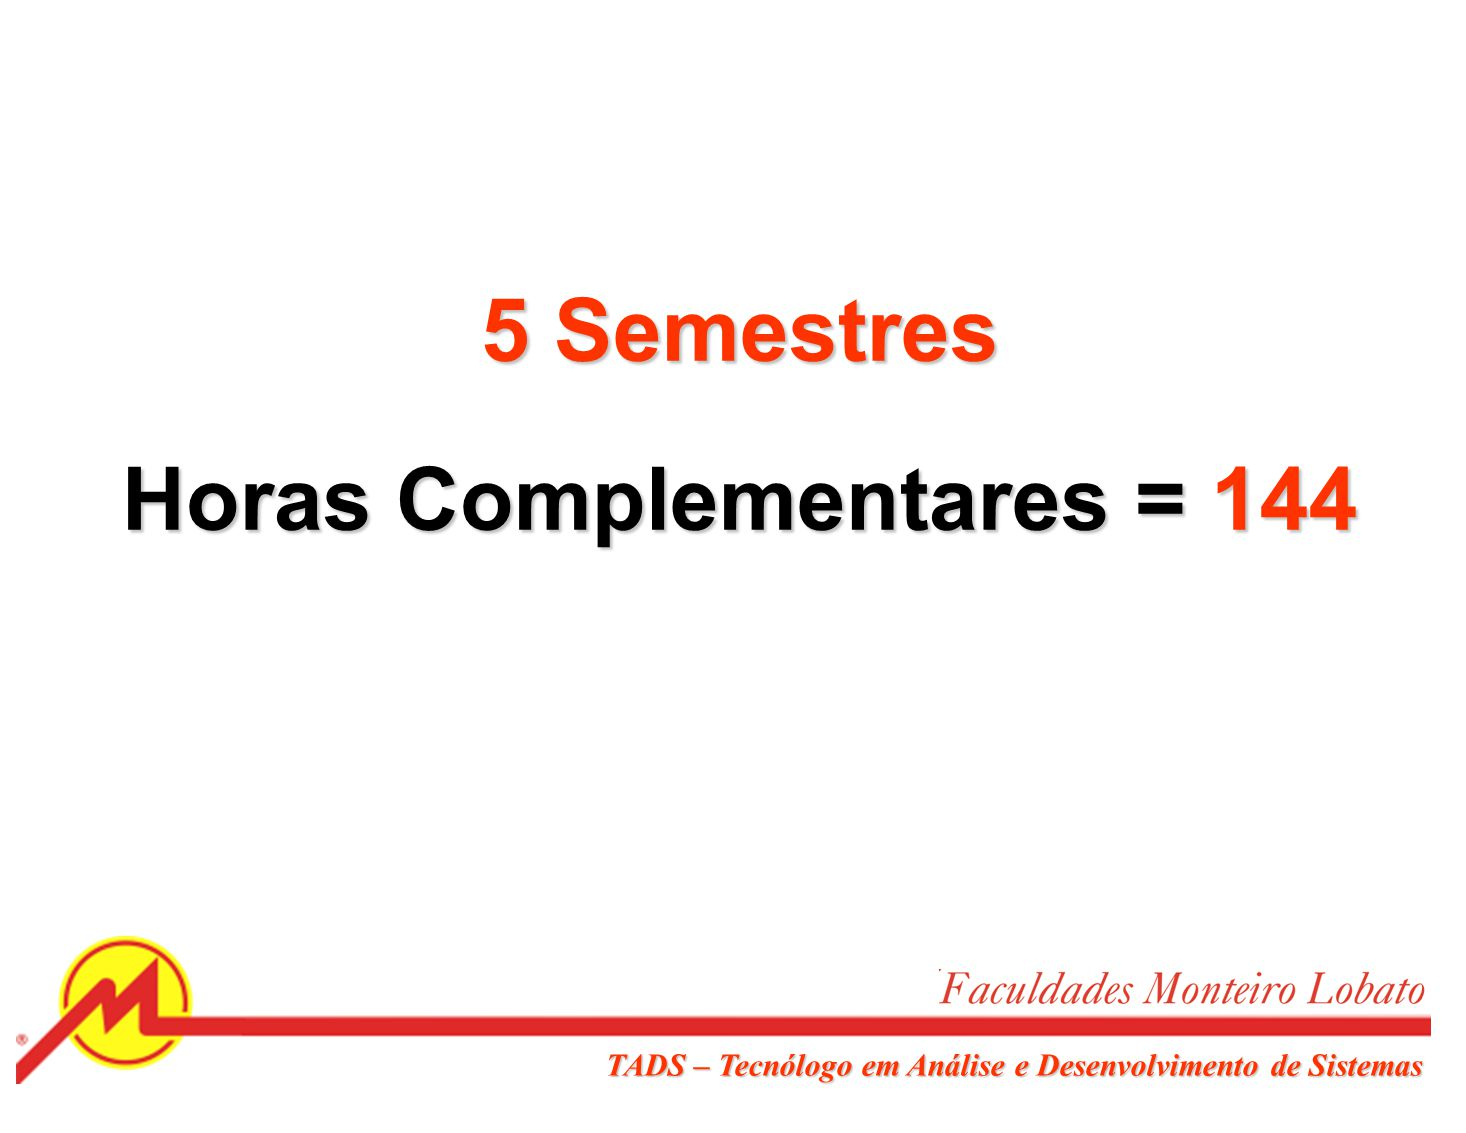 Horas Complementares = 144